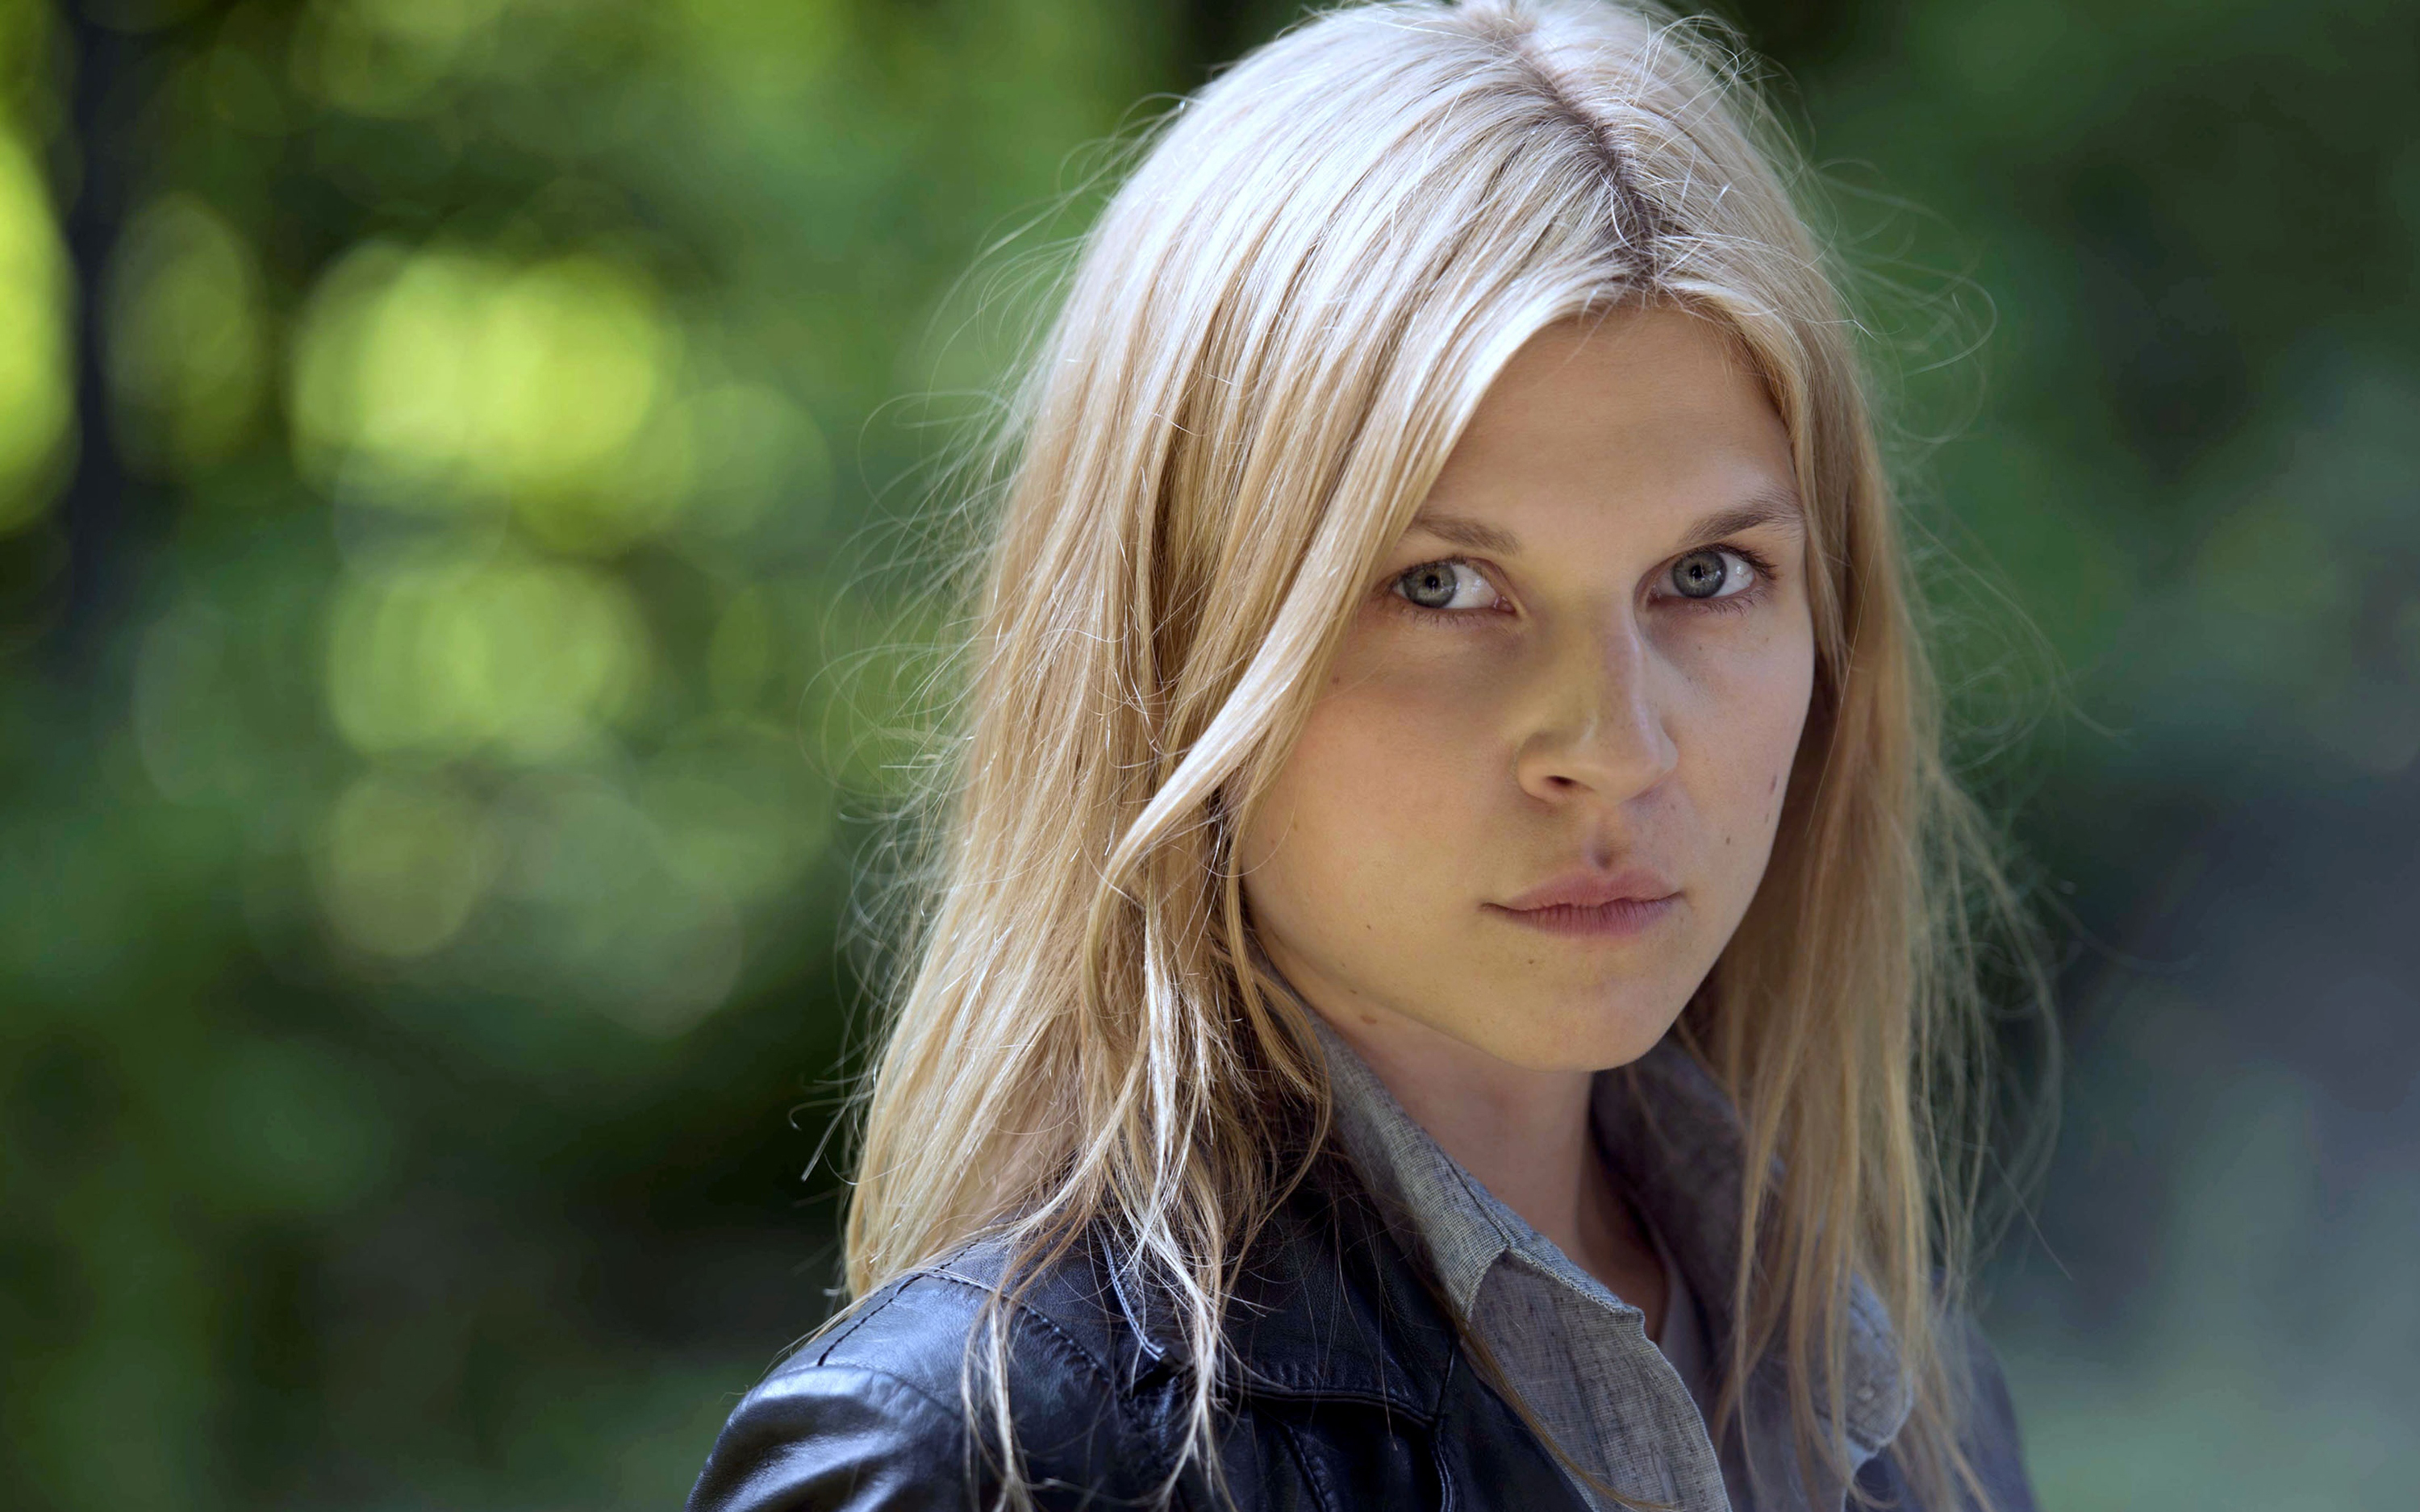 3000x1875 - Clemence Poesy Wallpapers 1